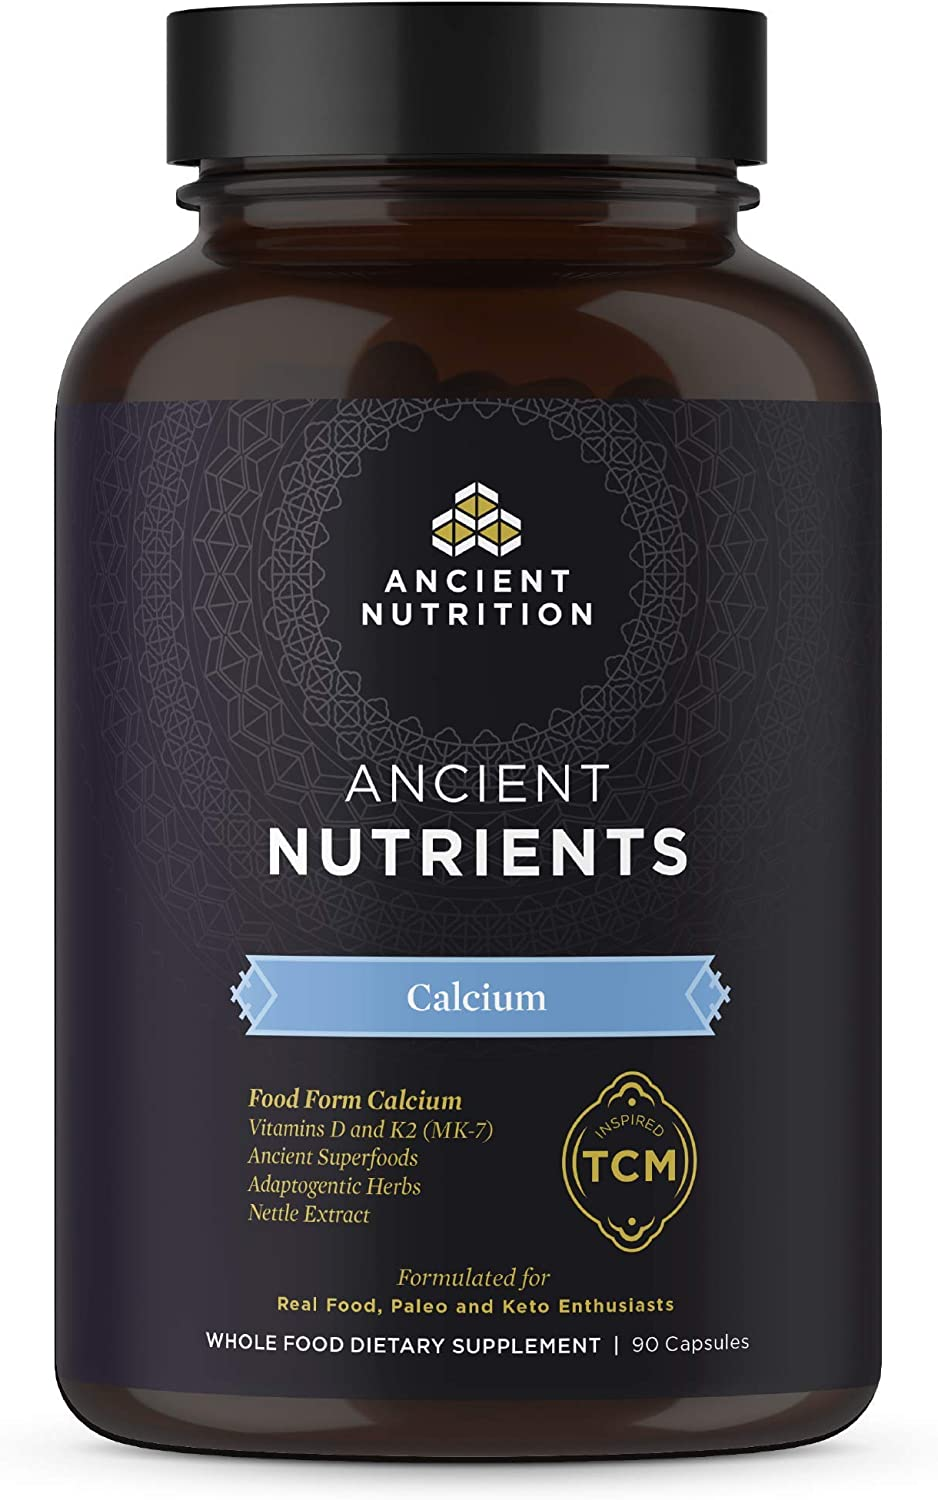 Ancient Nutrition, Ancient Nutrients Calcium - Food Form Calcium, Vitamins D and K2, Adaptogenic Herbs, Enzyme Activated, Paleo & Keto Friendly, 90 Capsules